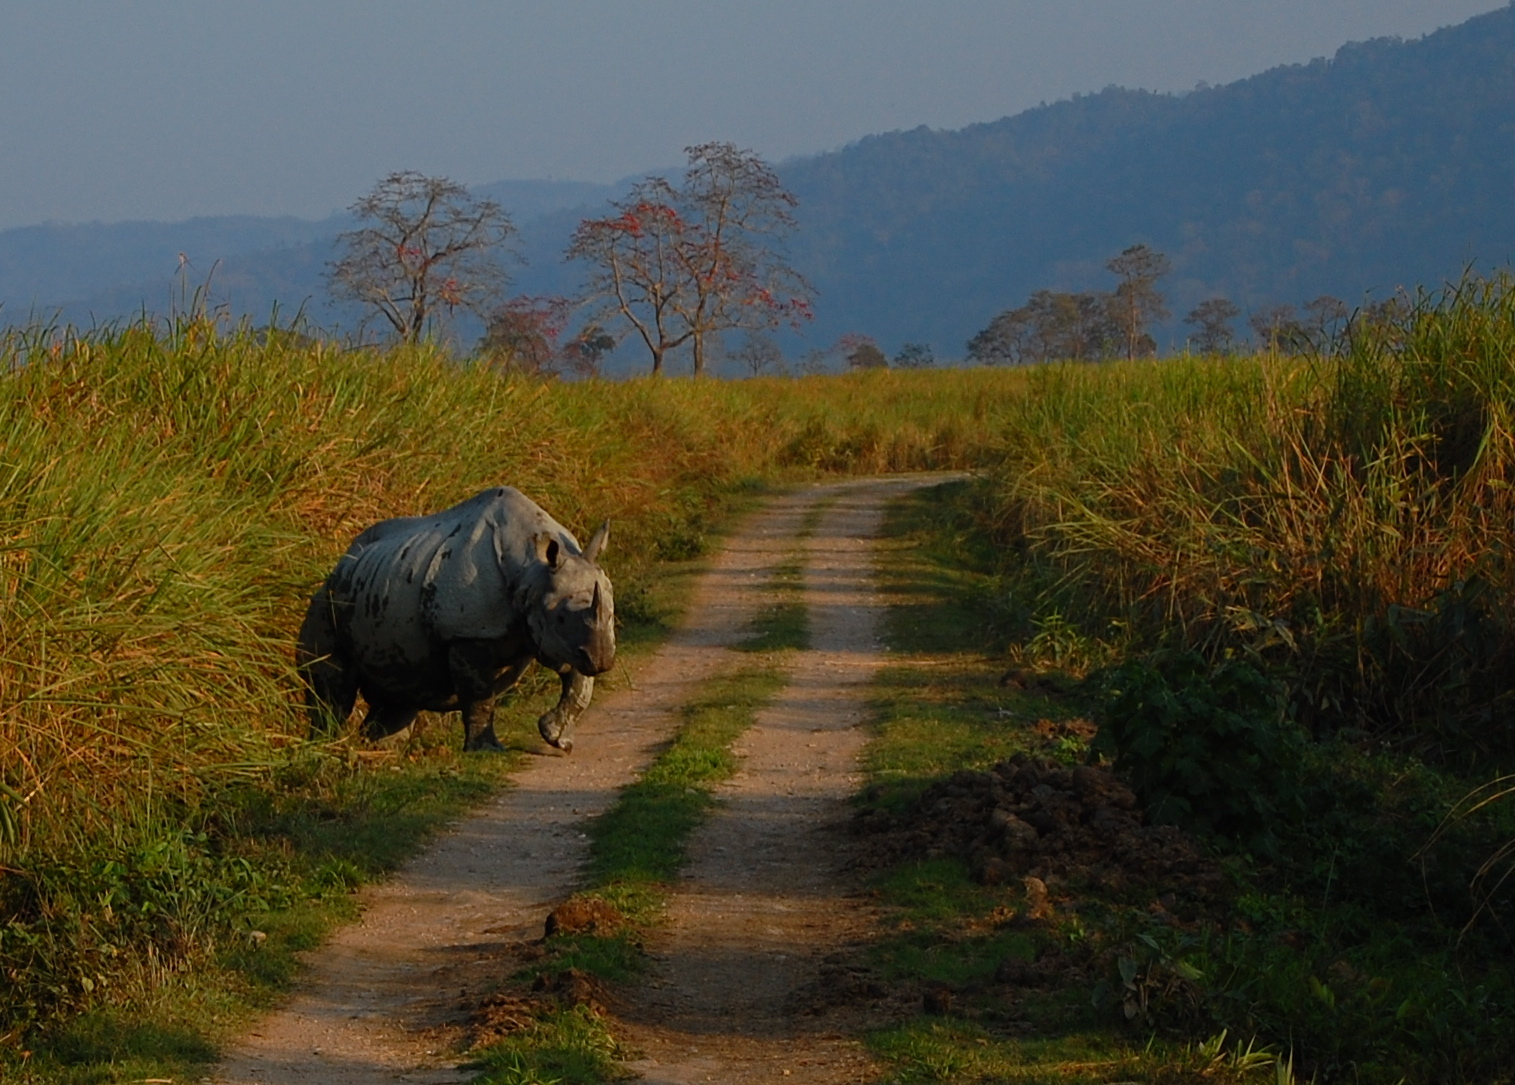 Kaziranga National Forest in Assam, one of the best places to visit among the Seven Sisters of India